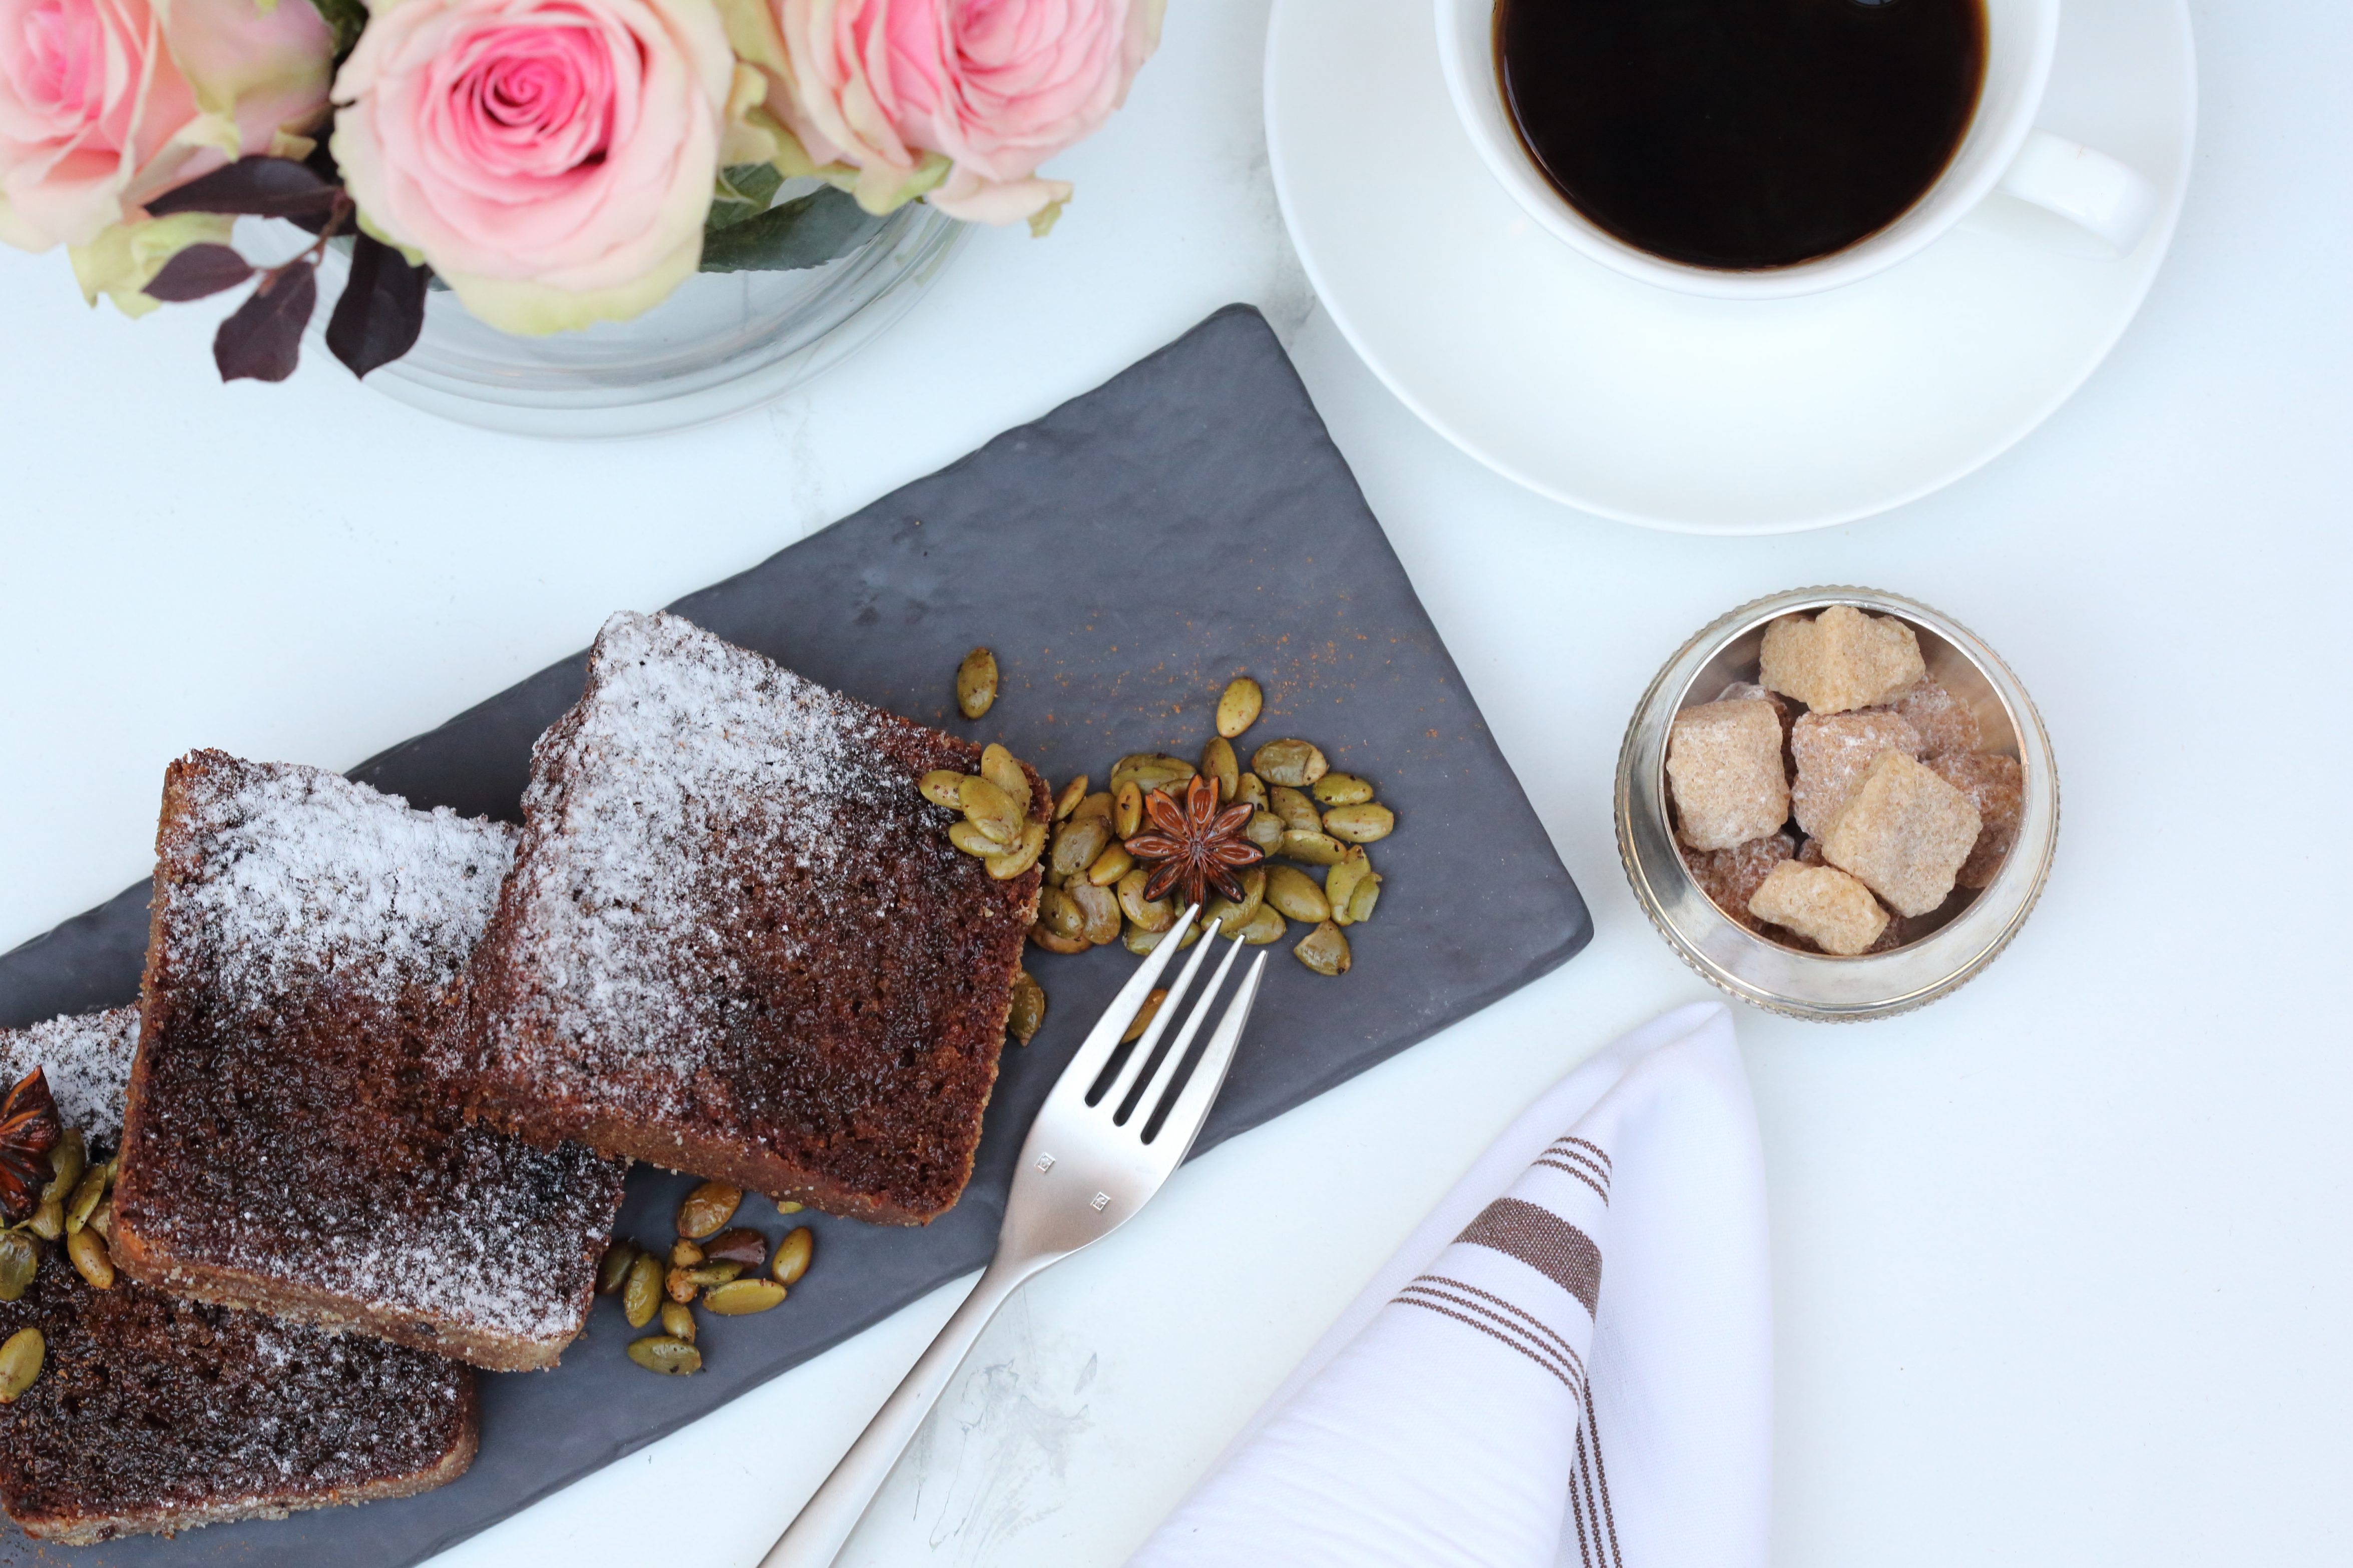 Created by Pastry Chef Annika Loureiro, the Cherry Cola Spice Cake perfectly balances sweet and savory with notes of cherry and Coca-Cola, ginger, cinnamon, allspice and Szechuan pepper. Please find the full recipe below and click here for a high-res image of the cake.